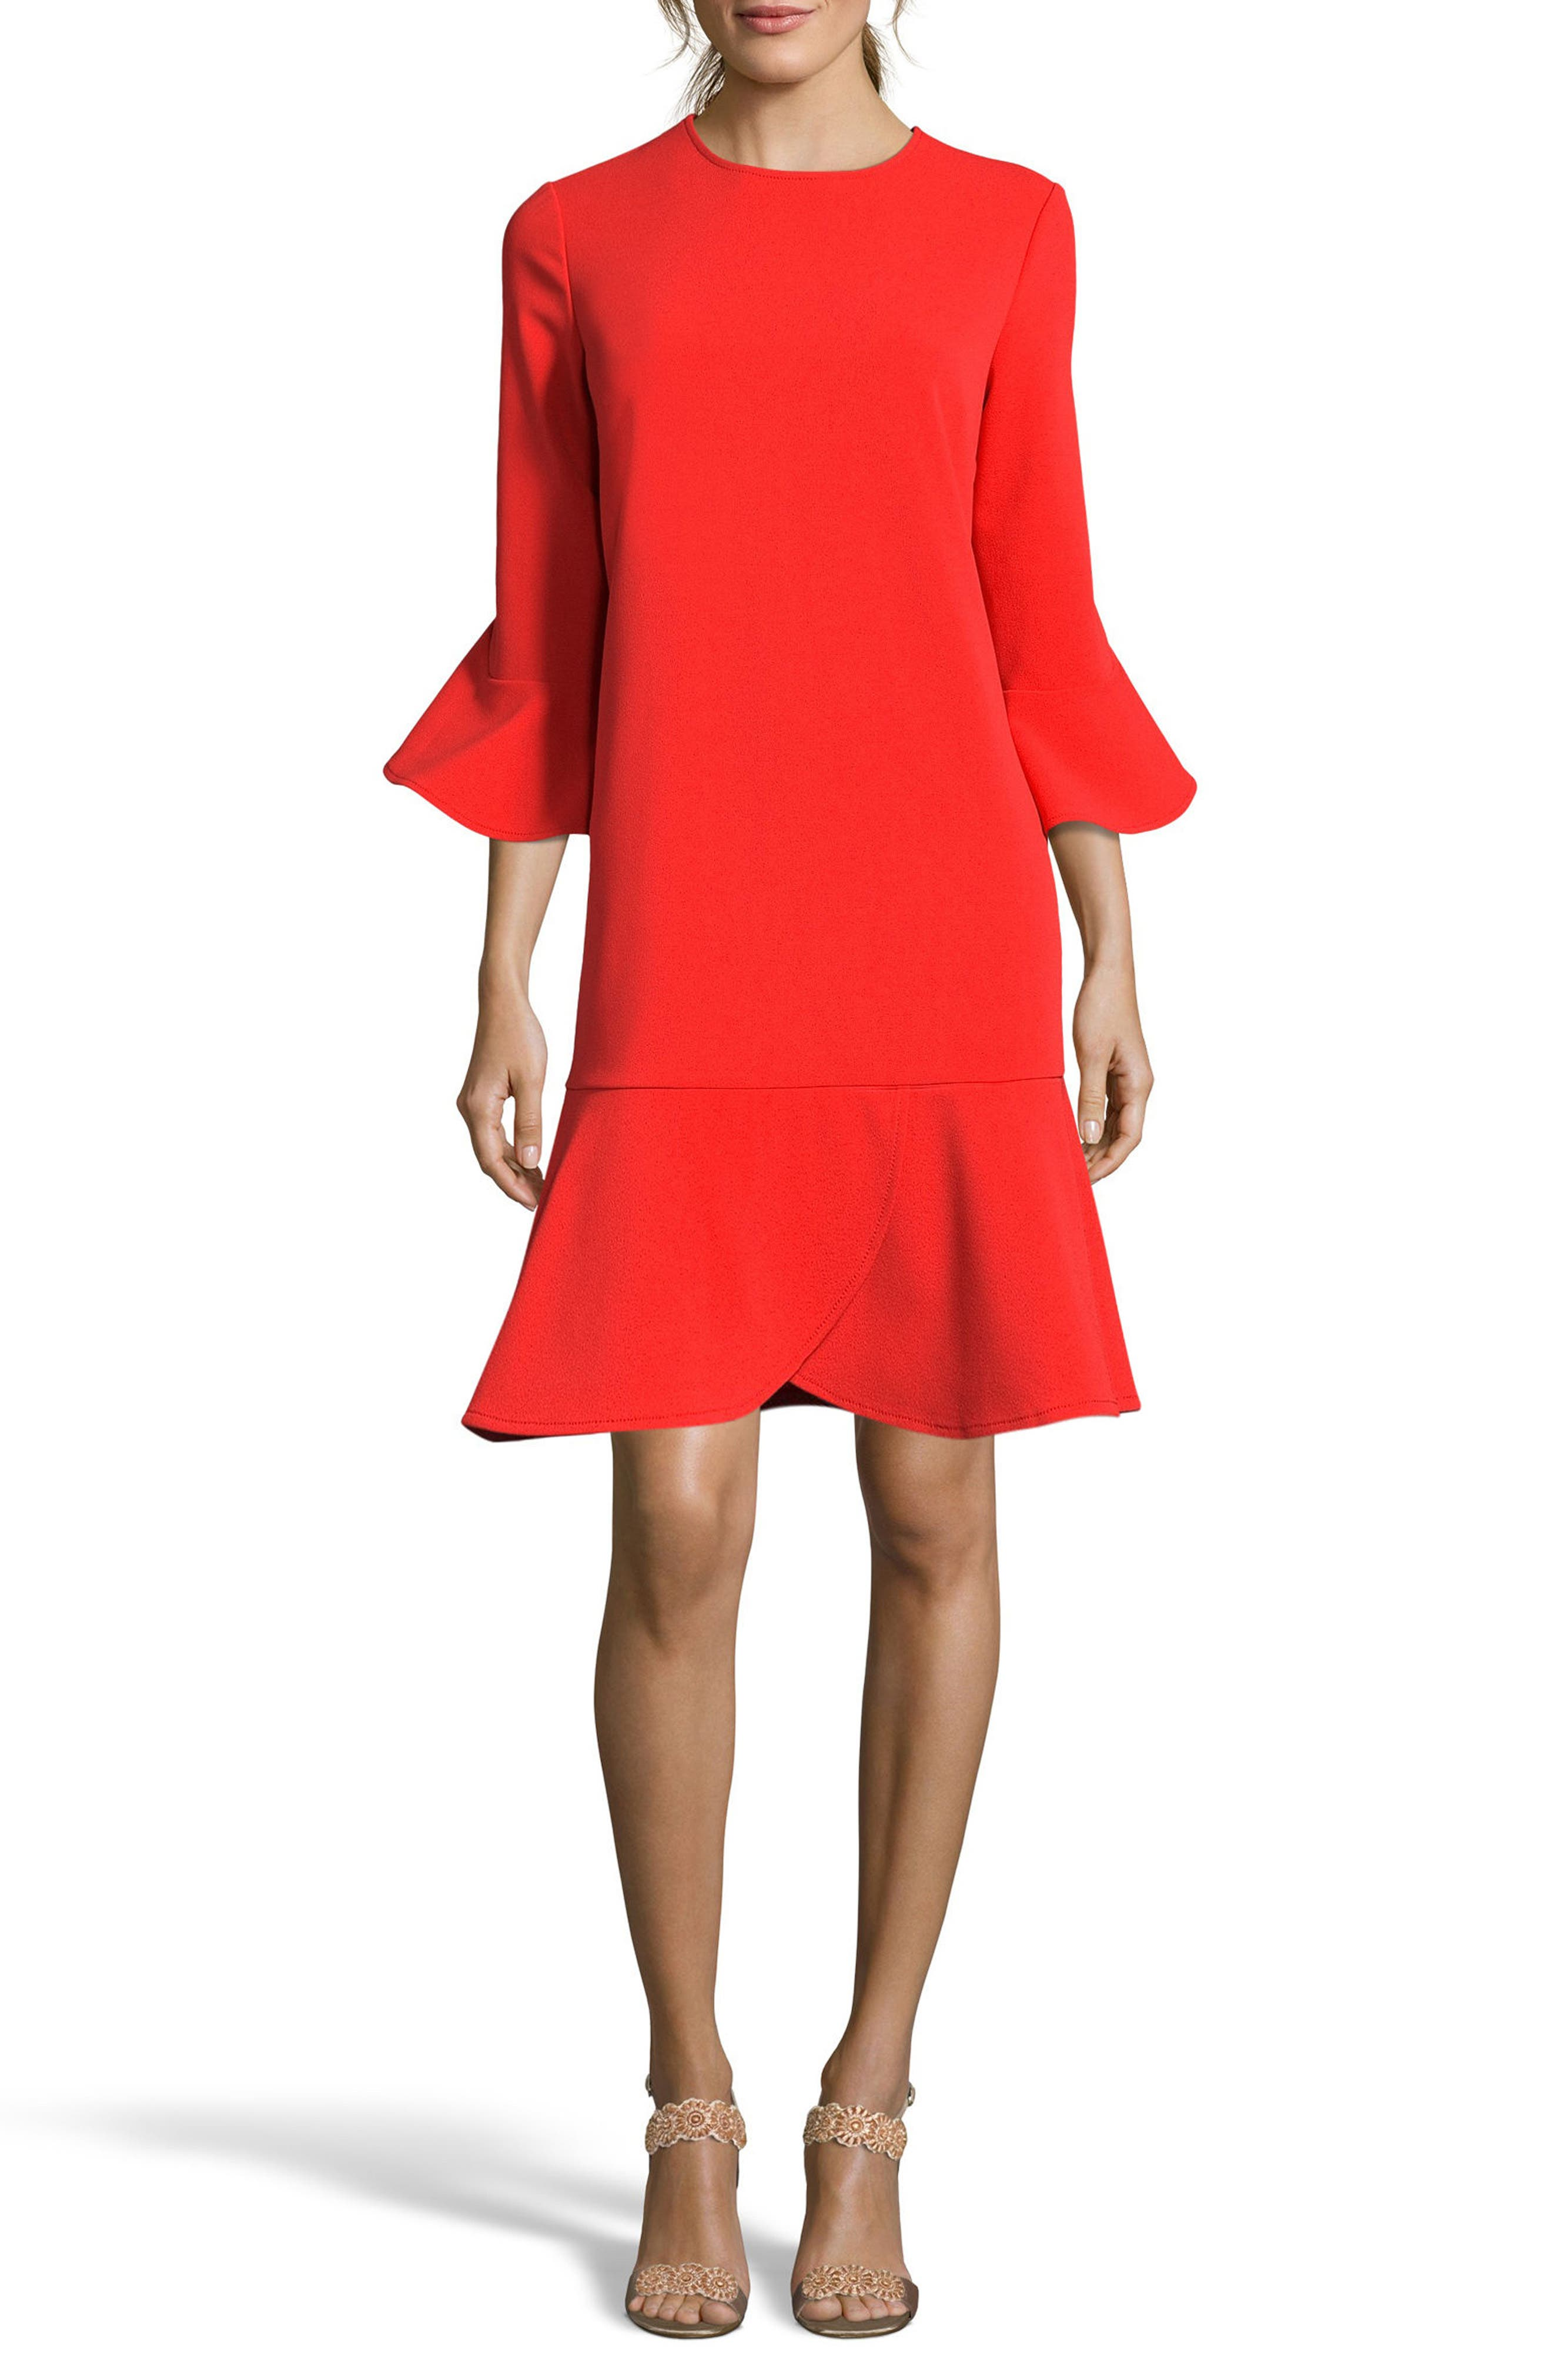 Ruffle Bell Sleeve Shift Dress,                         Main,                         color, Coral/ Red